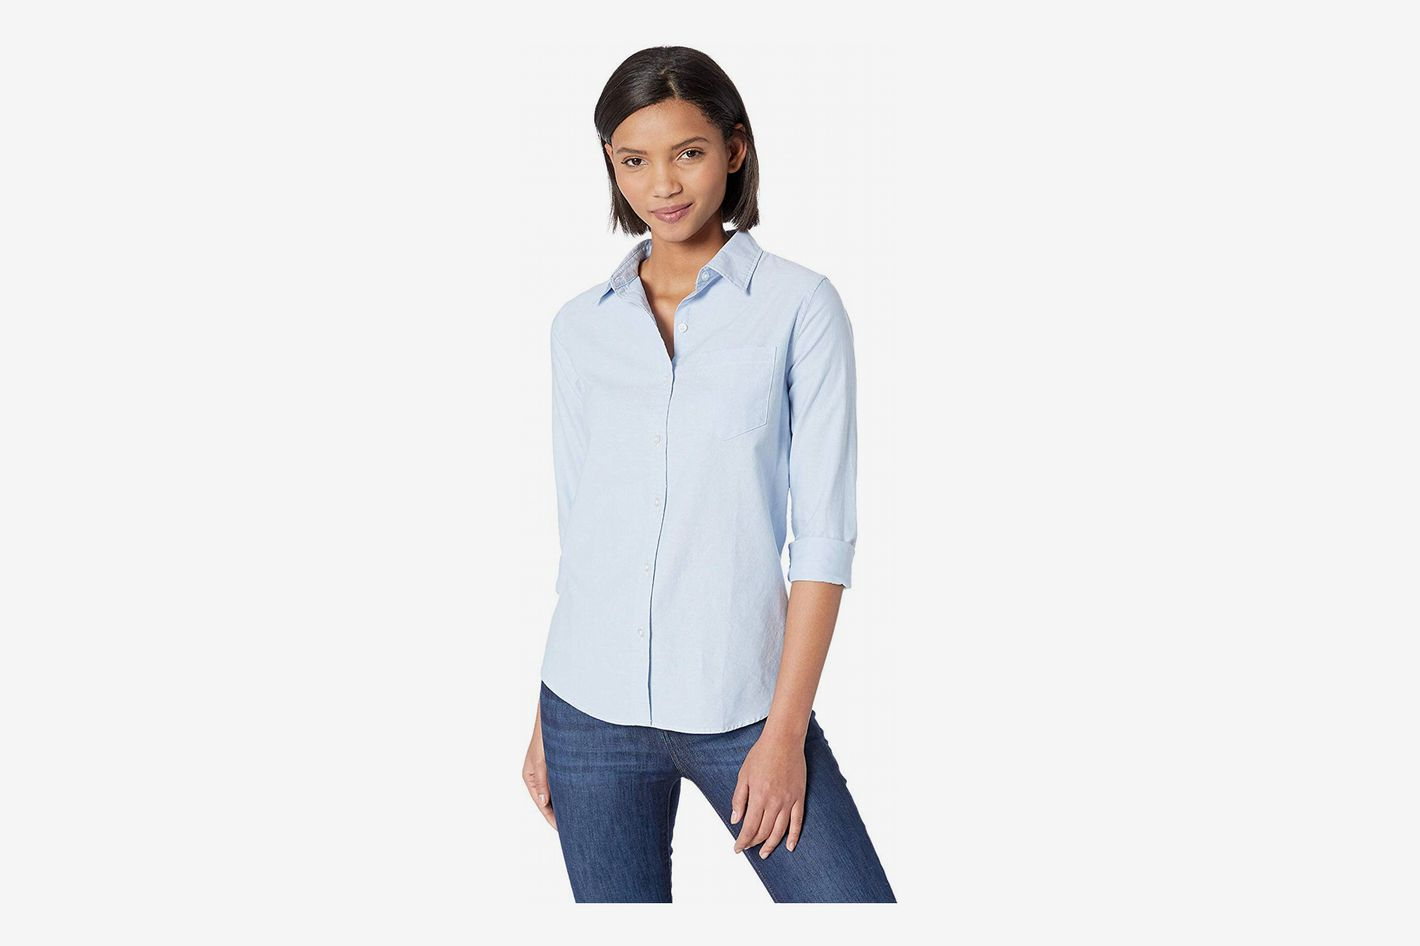 70533898f Amazon Essentials Women's Long-Sleeve Classic-Fit Oxford Shirt at Amazon.  Buy